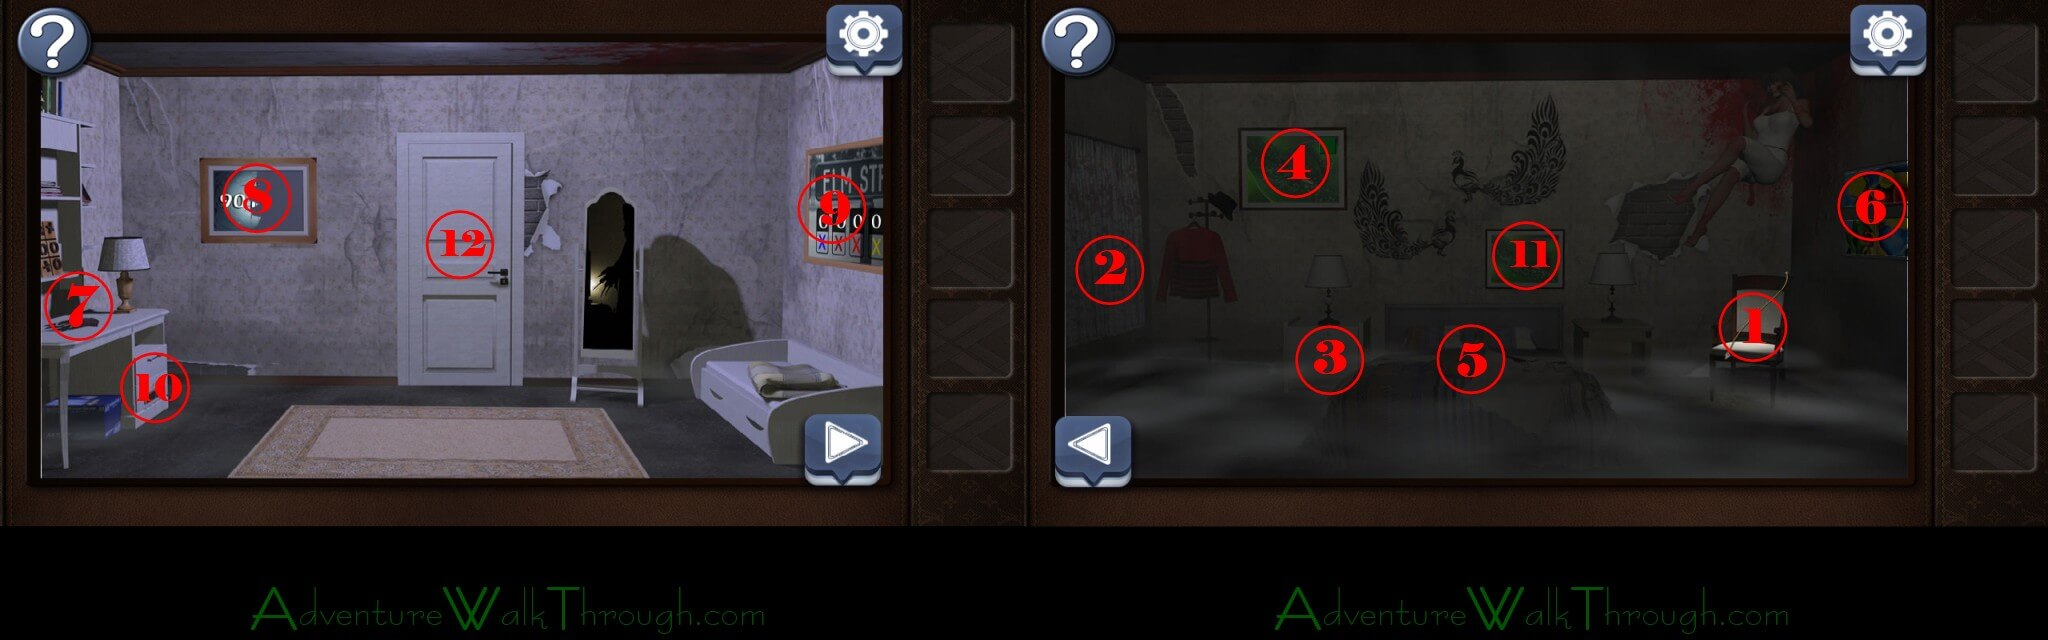 Can You Escape Horror Level 3